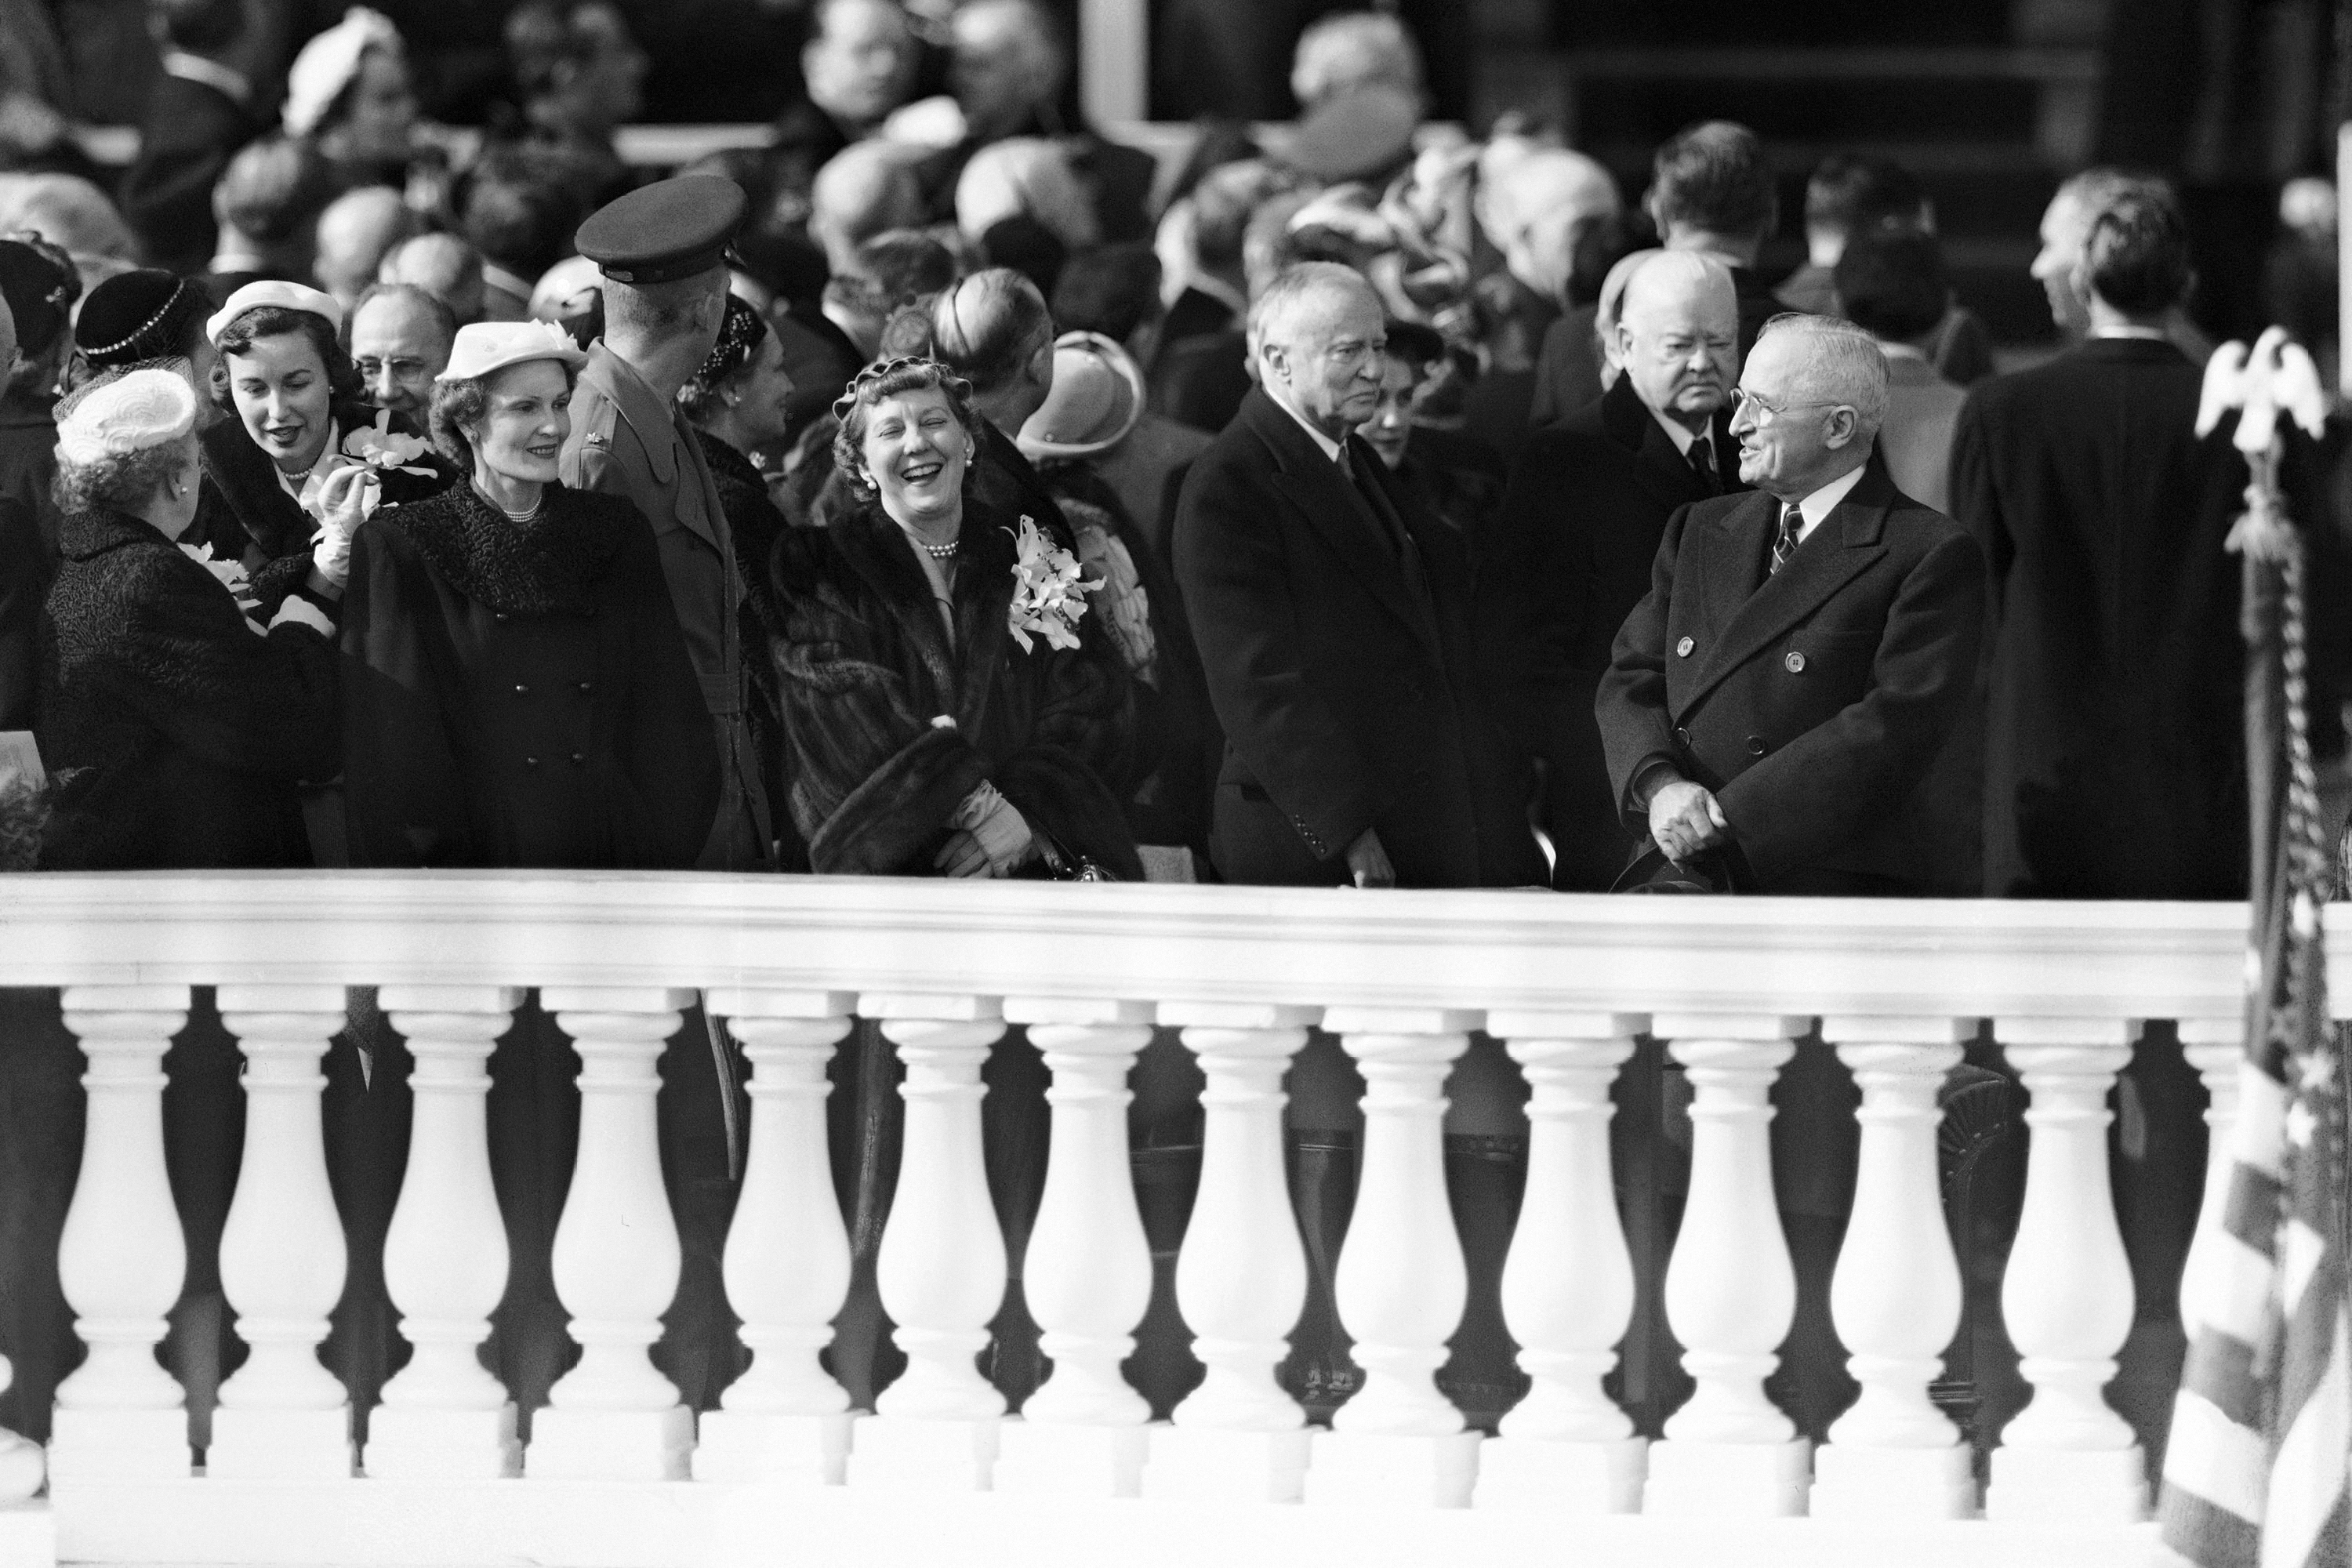 Outgoing President Harry Truman, at right, and new first lady Mamie Eisenhower, left, appear to be sharing a joke on presidential inauguration stand in Washington, Jan. 20, 1953, but ex-president Herbert Hoover, behind Truman, takes a serious view of the situation.